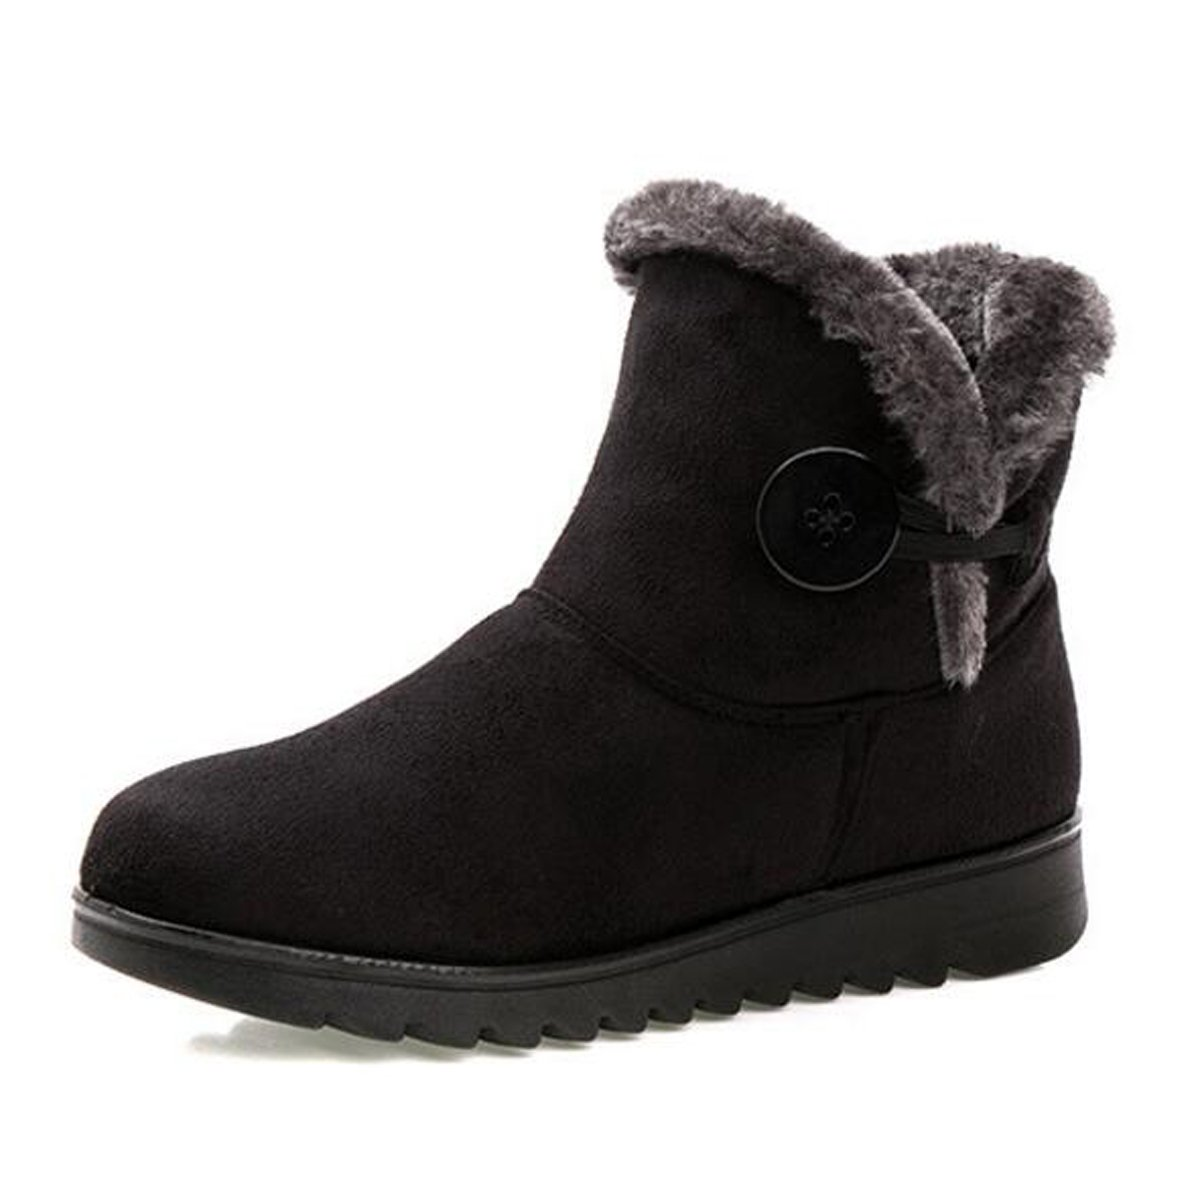 Fur Lined Womens Snow Boots Winter Button Pull on Ankle Booties Shoes